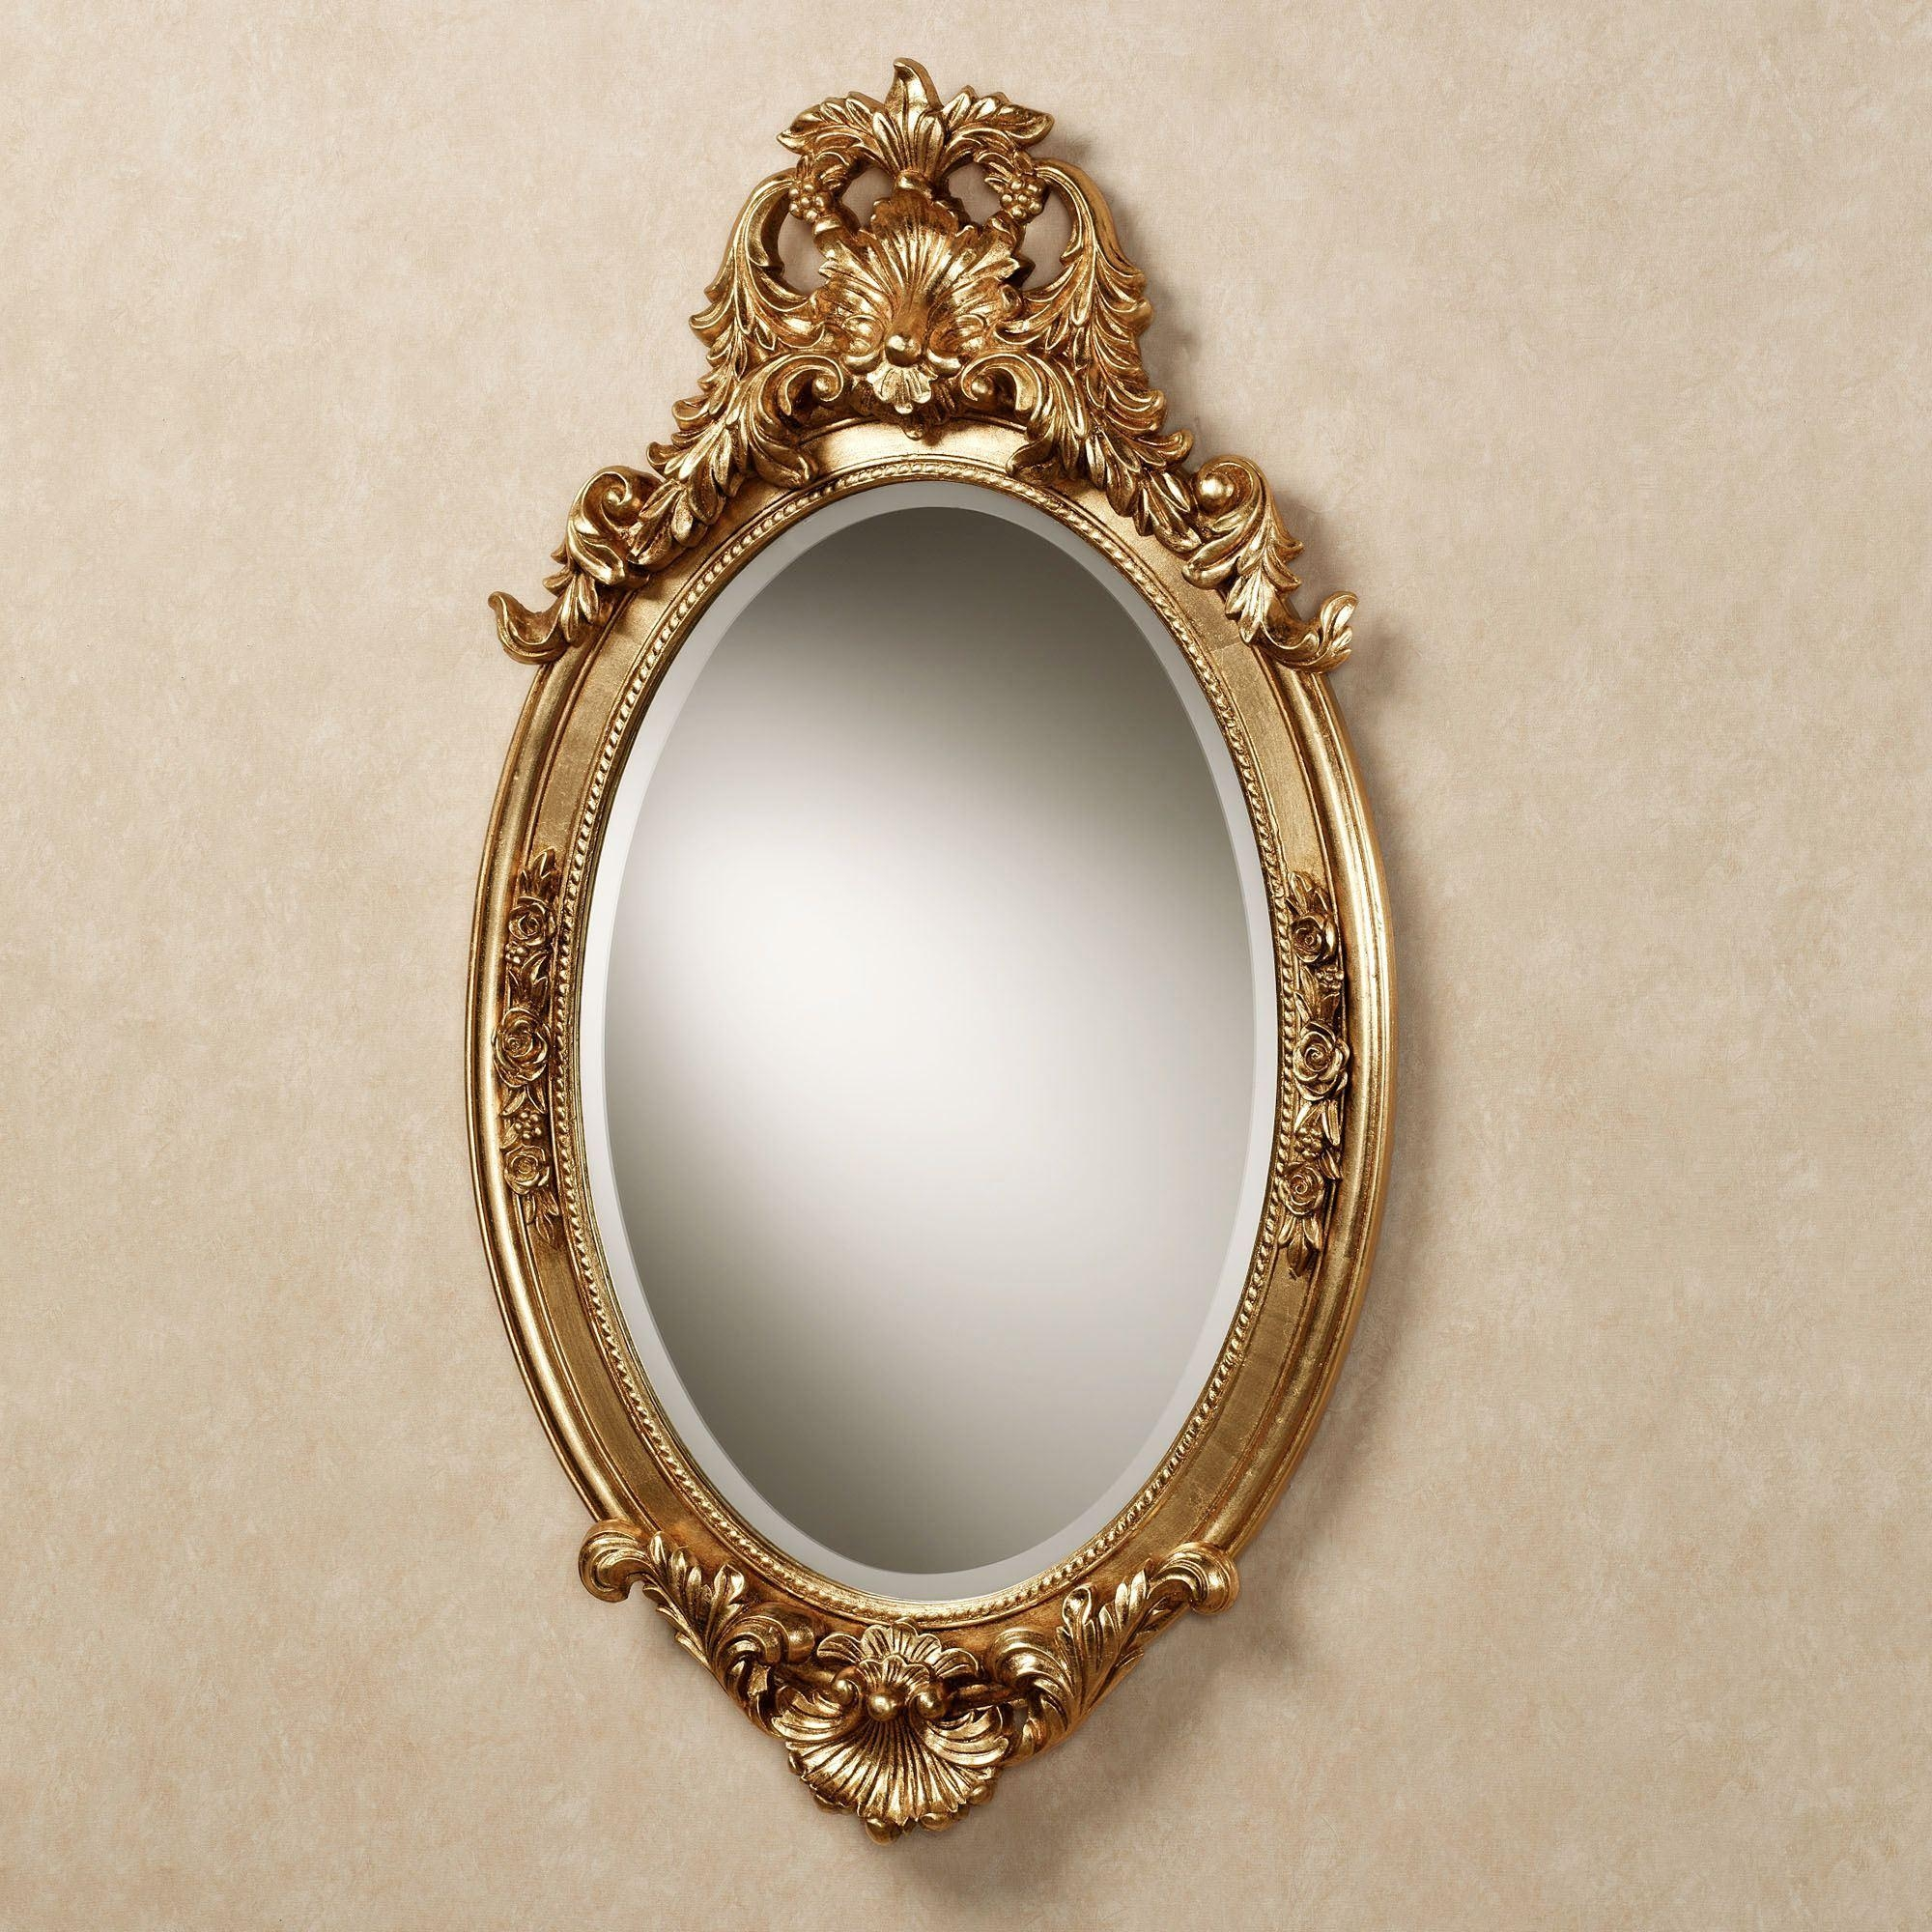 Hallandale Acanthus Leaf Oval Wall Mirror Intended For Antique Wall Mirror (View 14 of 20)